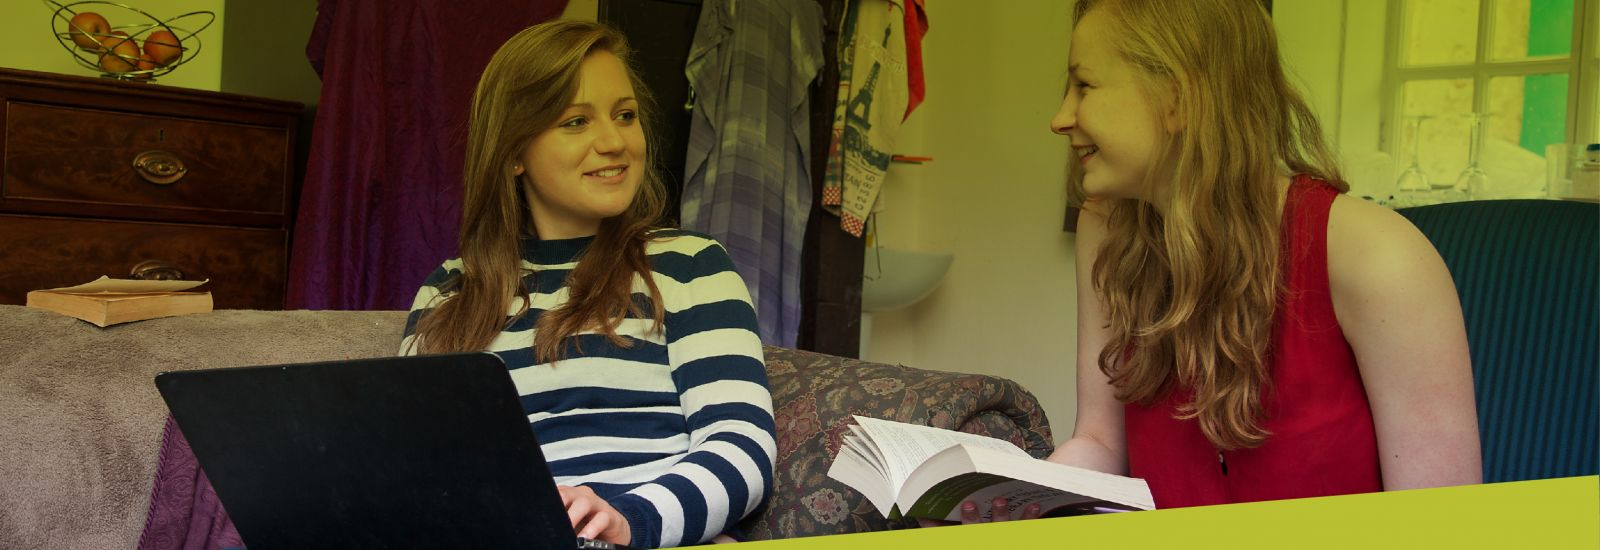 Two students working together in a college bedroom